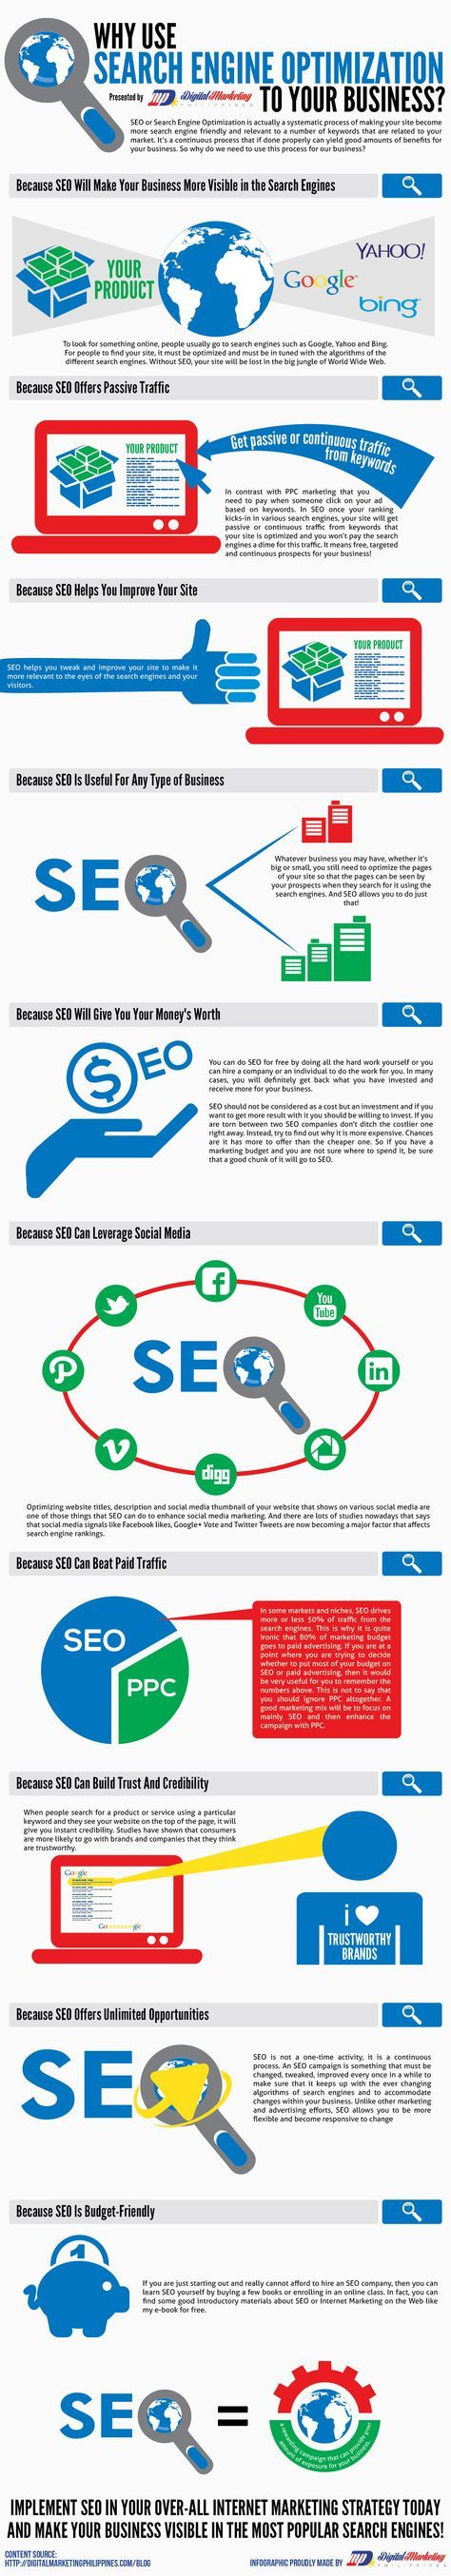 Why Use Search Engine Optimization to Your Business? #SEO #Marketing #Infographic (scheduled via http://www.tailwindapp.com?ref=scheduled_pin&post=191501)